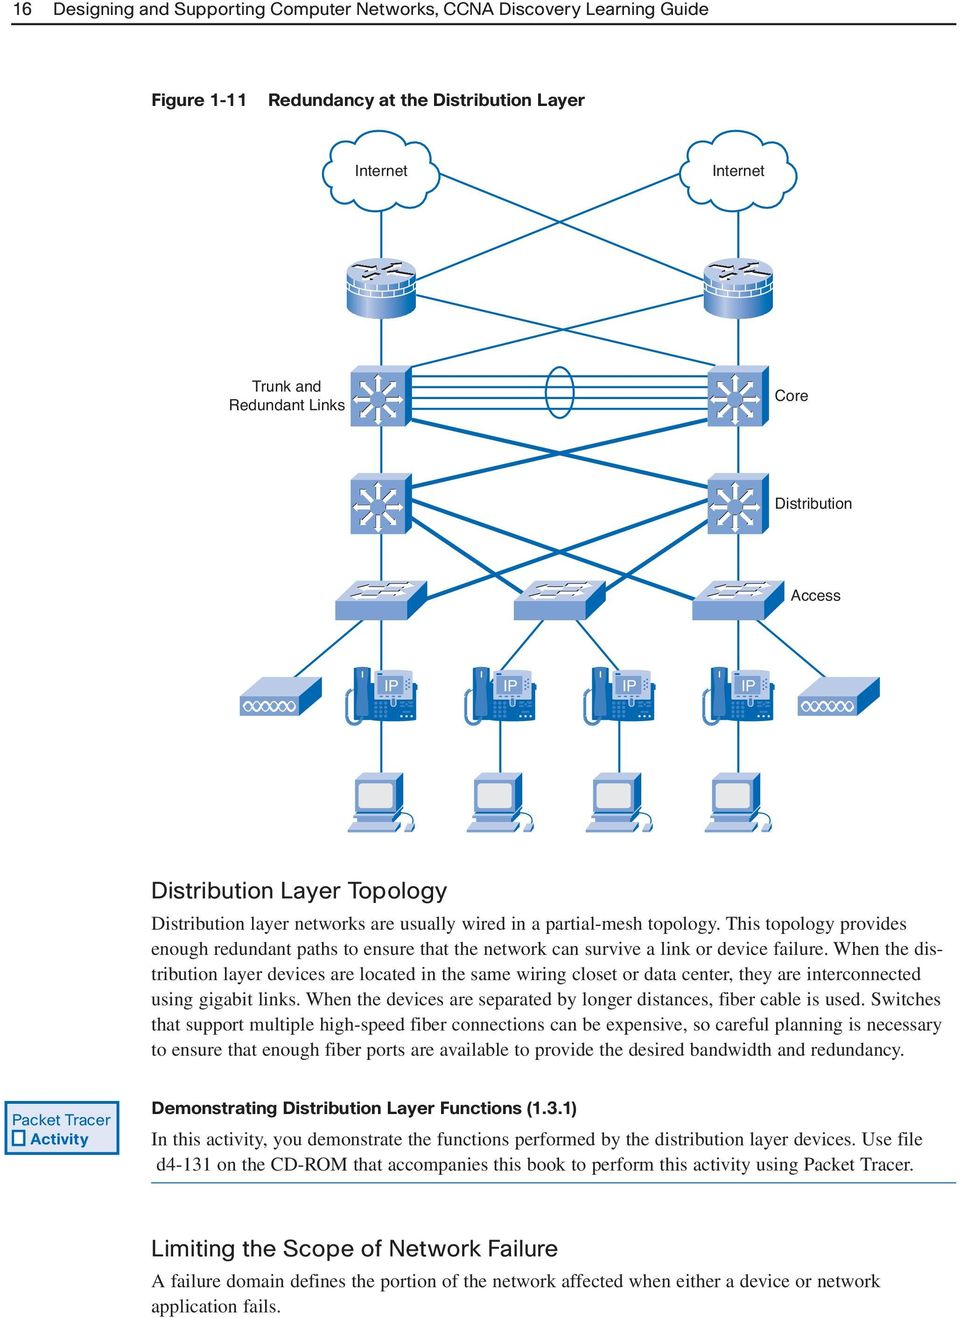 Introducing Network Design Concepts Pdf Wiring Closet Diagram This Topology Provides Enough Redundant Paths To Ensure That The Can Survive A Link Or